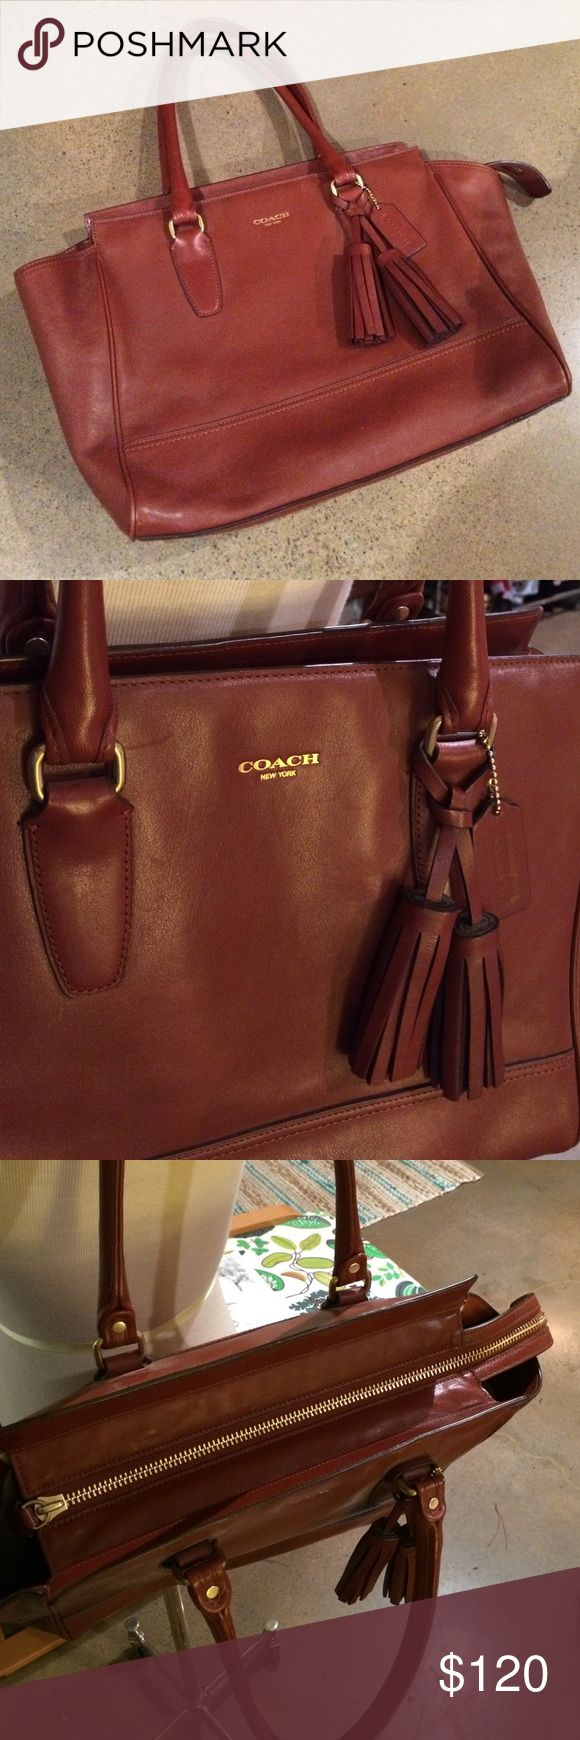 Coach Legacy Brown Carryall *Candace* - Like New! Like new condition! Barely used. No major scratches or marks. Interior of bag is clean. The perfect bag to carry to work and big enough to carry to school. Coach Legacy, Candace bag. Coach Bags Totes